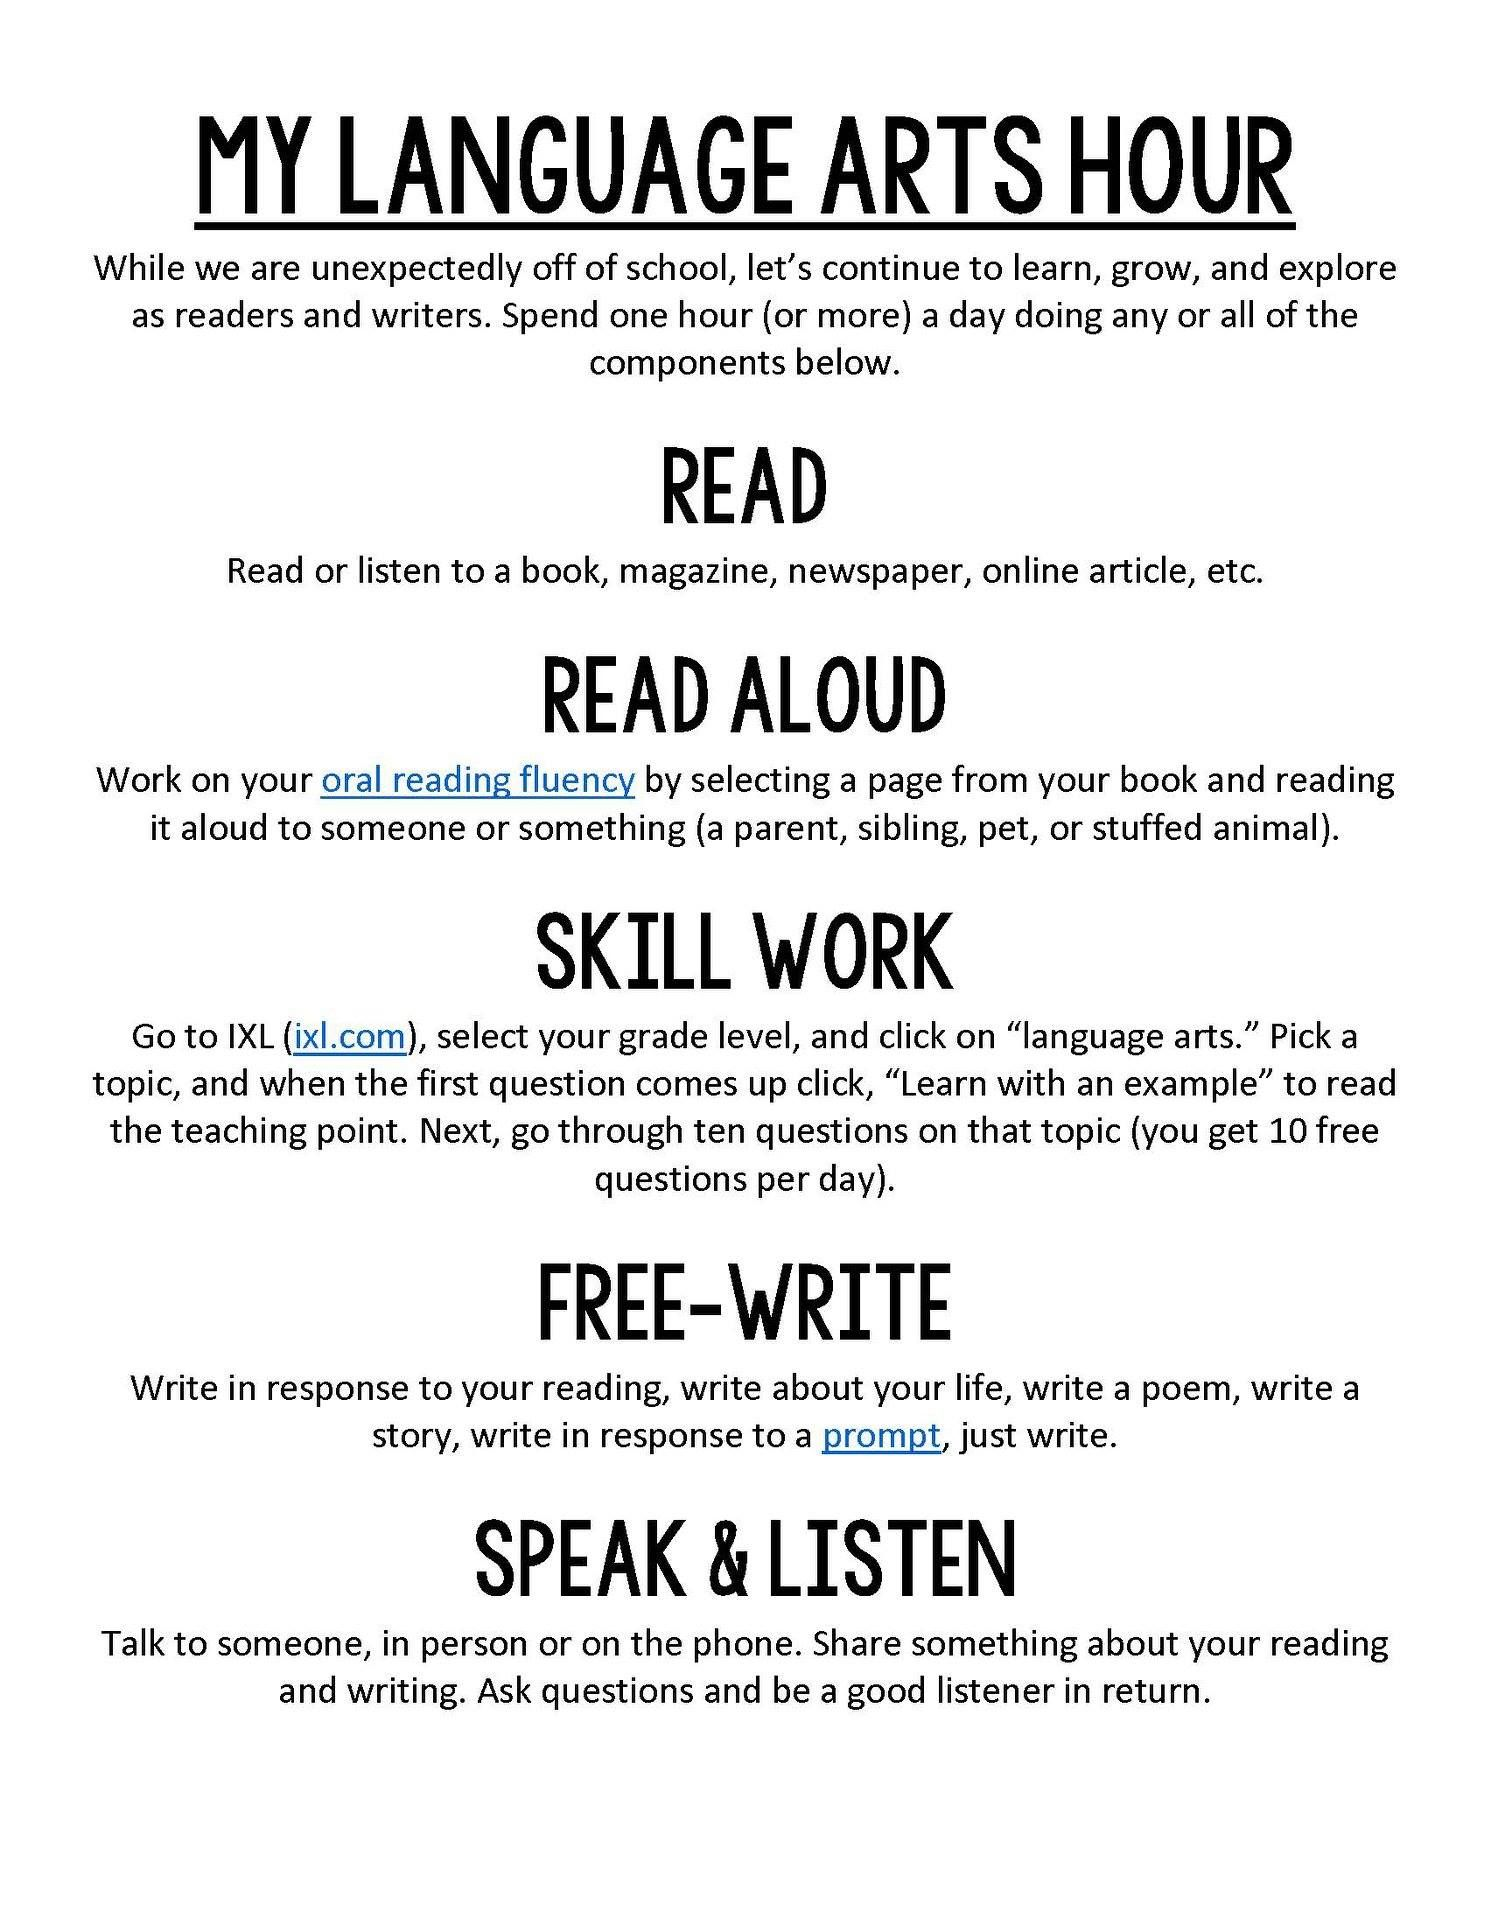 Pin On School Learn to read and write online